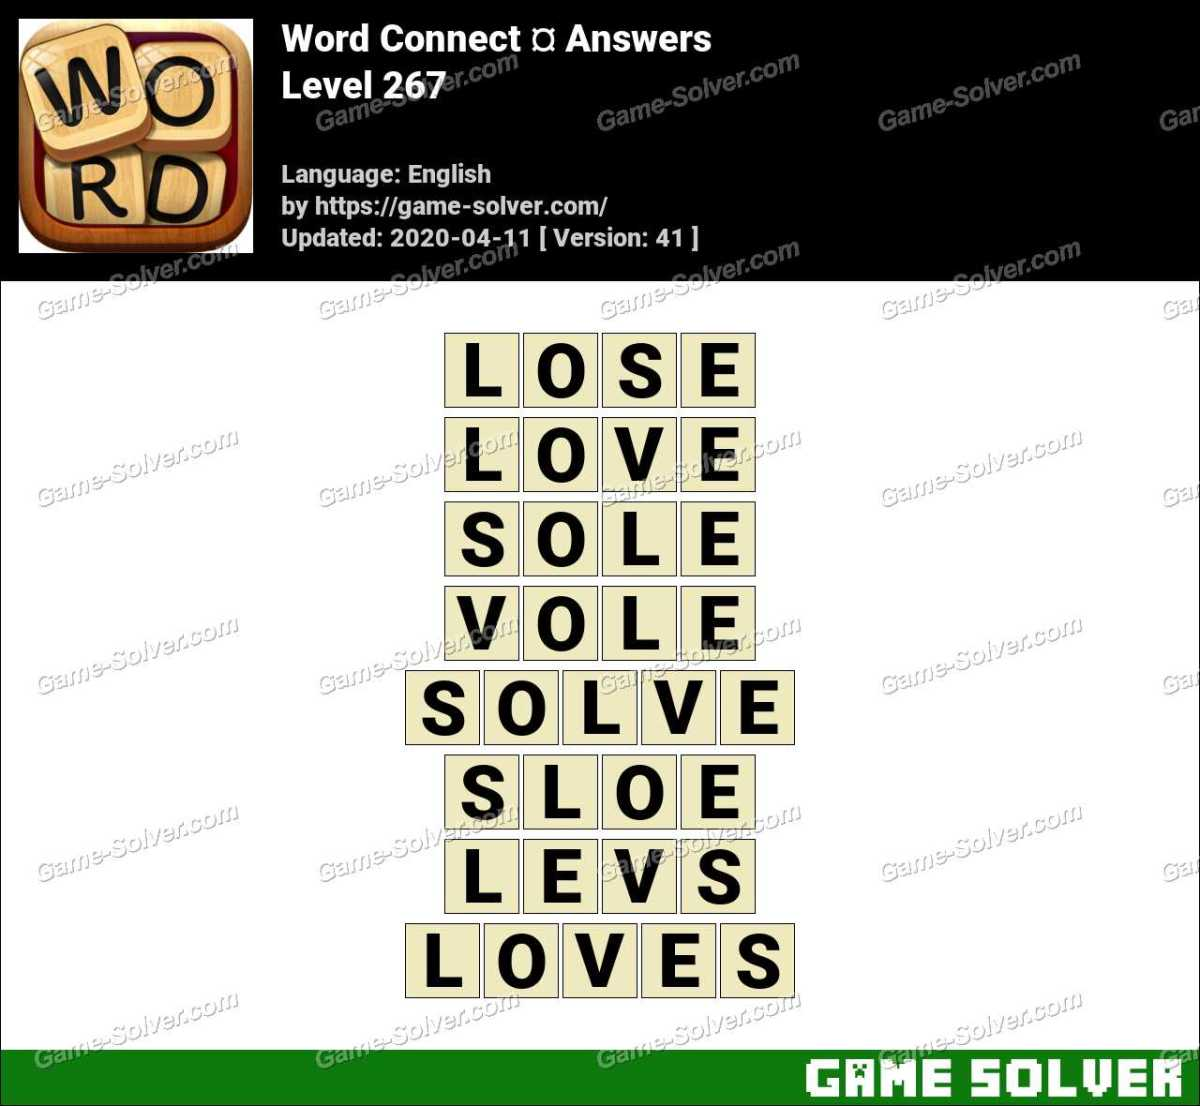 Word Connect Level 267 Answers